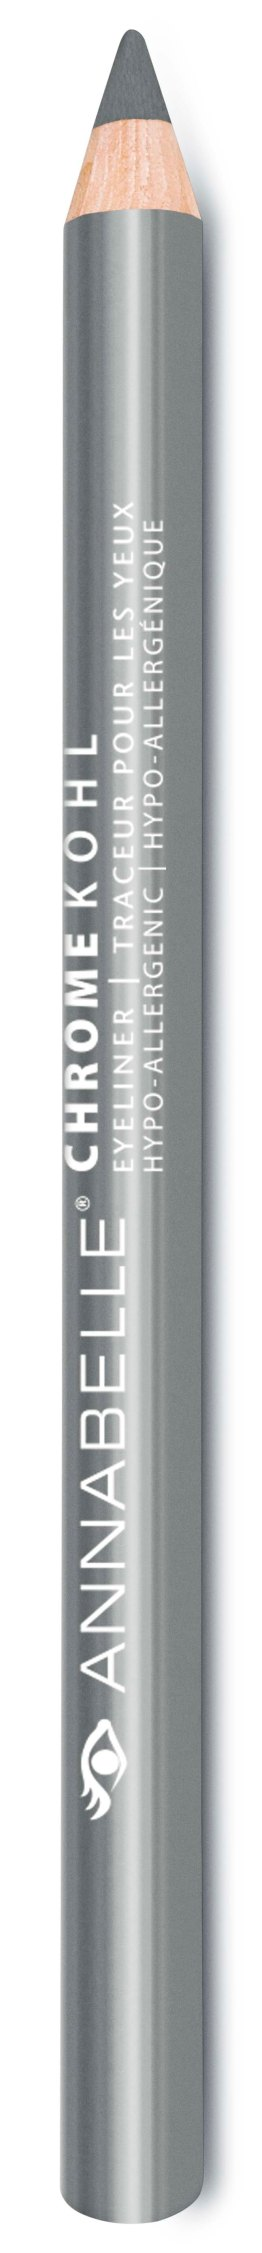 CHROME KOHL - Shocking Charcoal